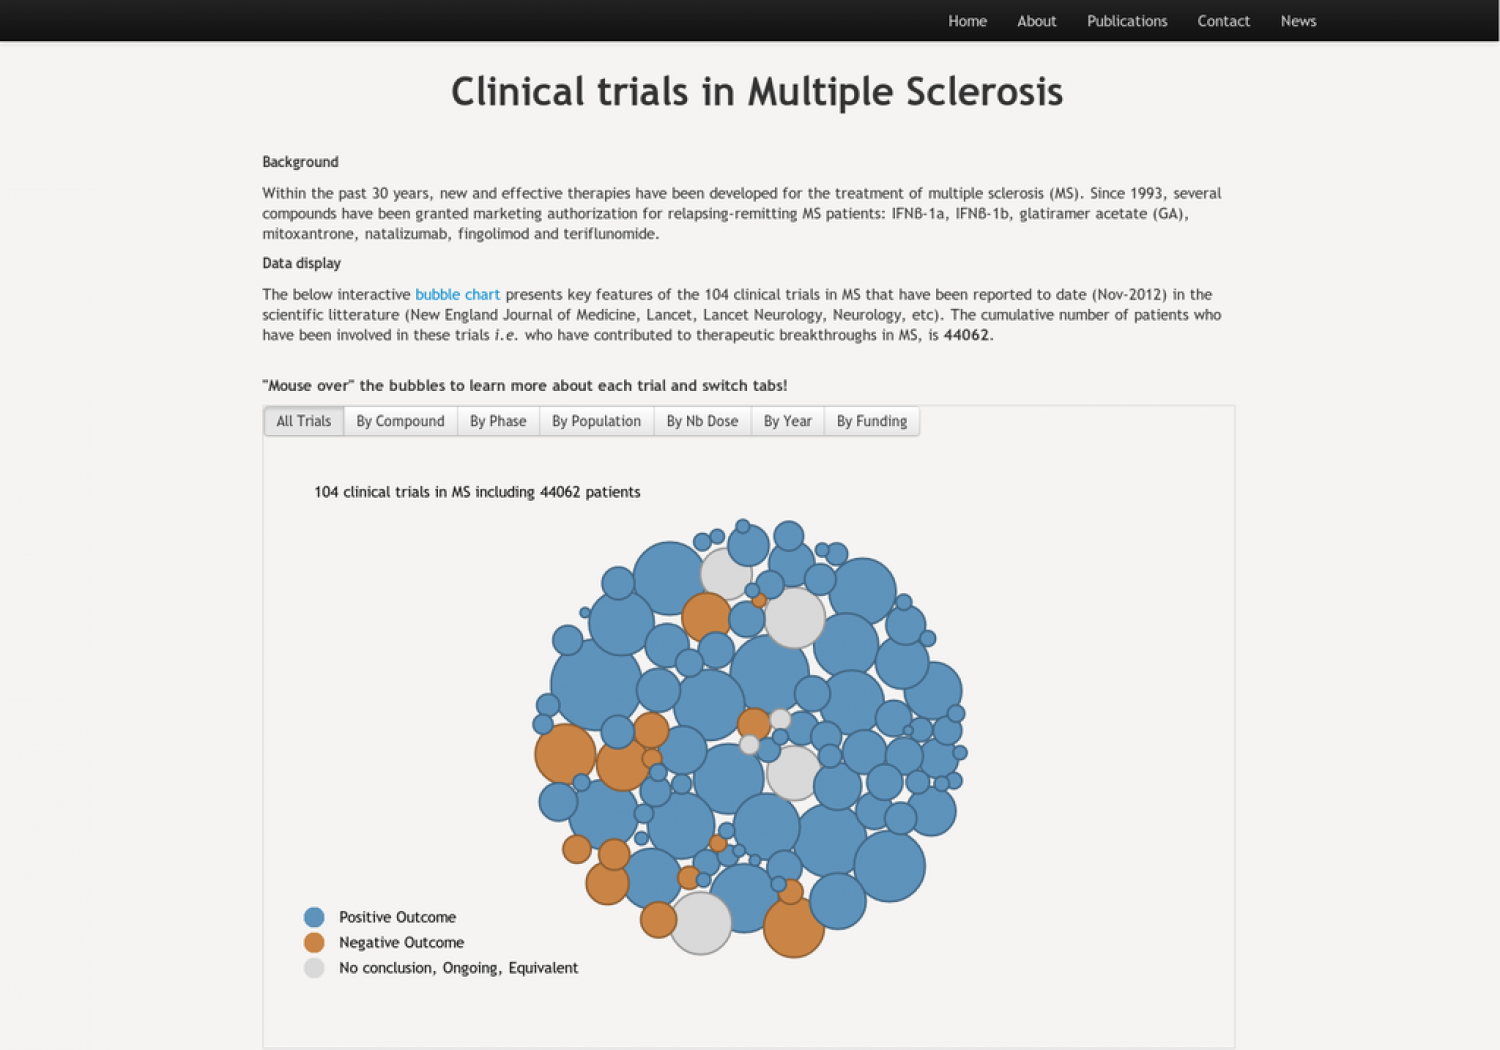 Clinical Trials in Multiple Sclerosis Infographic